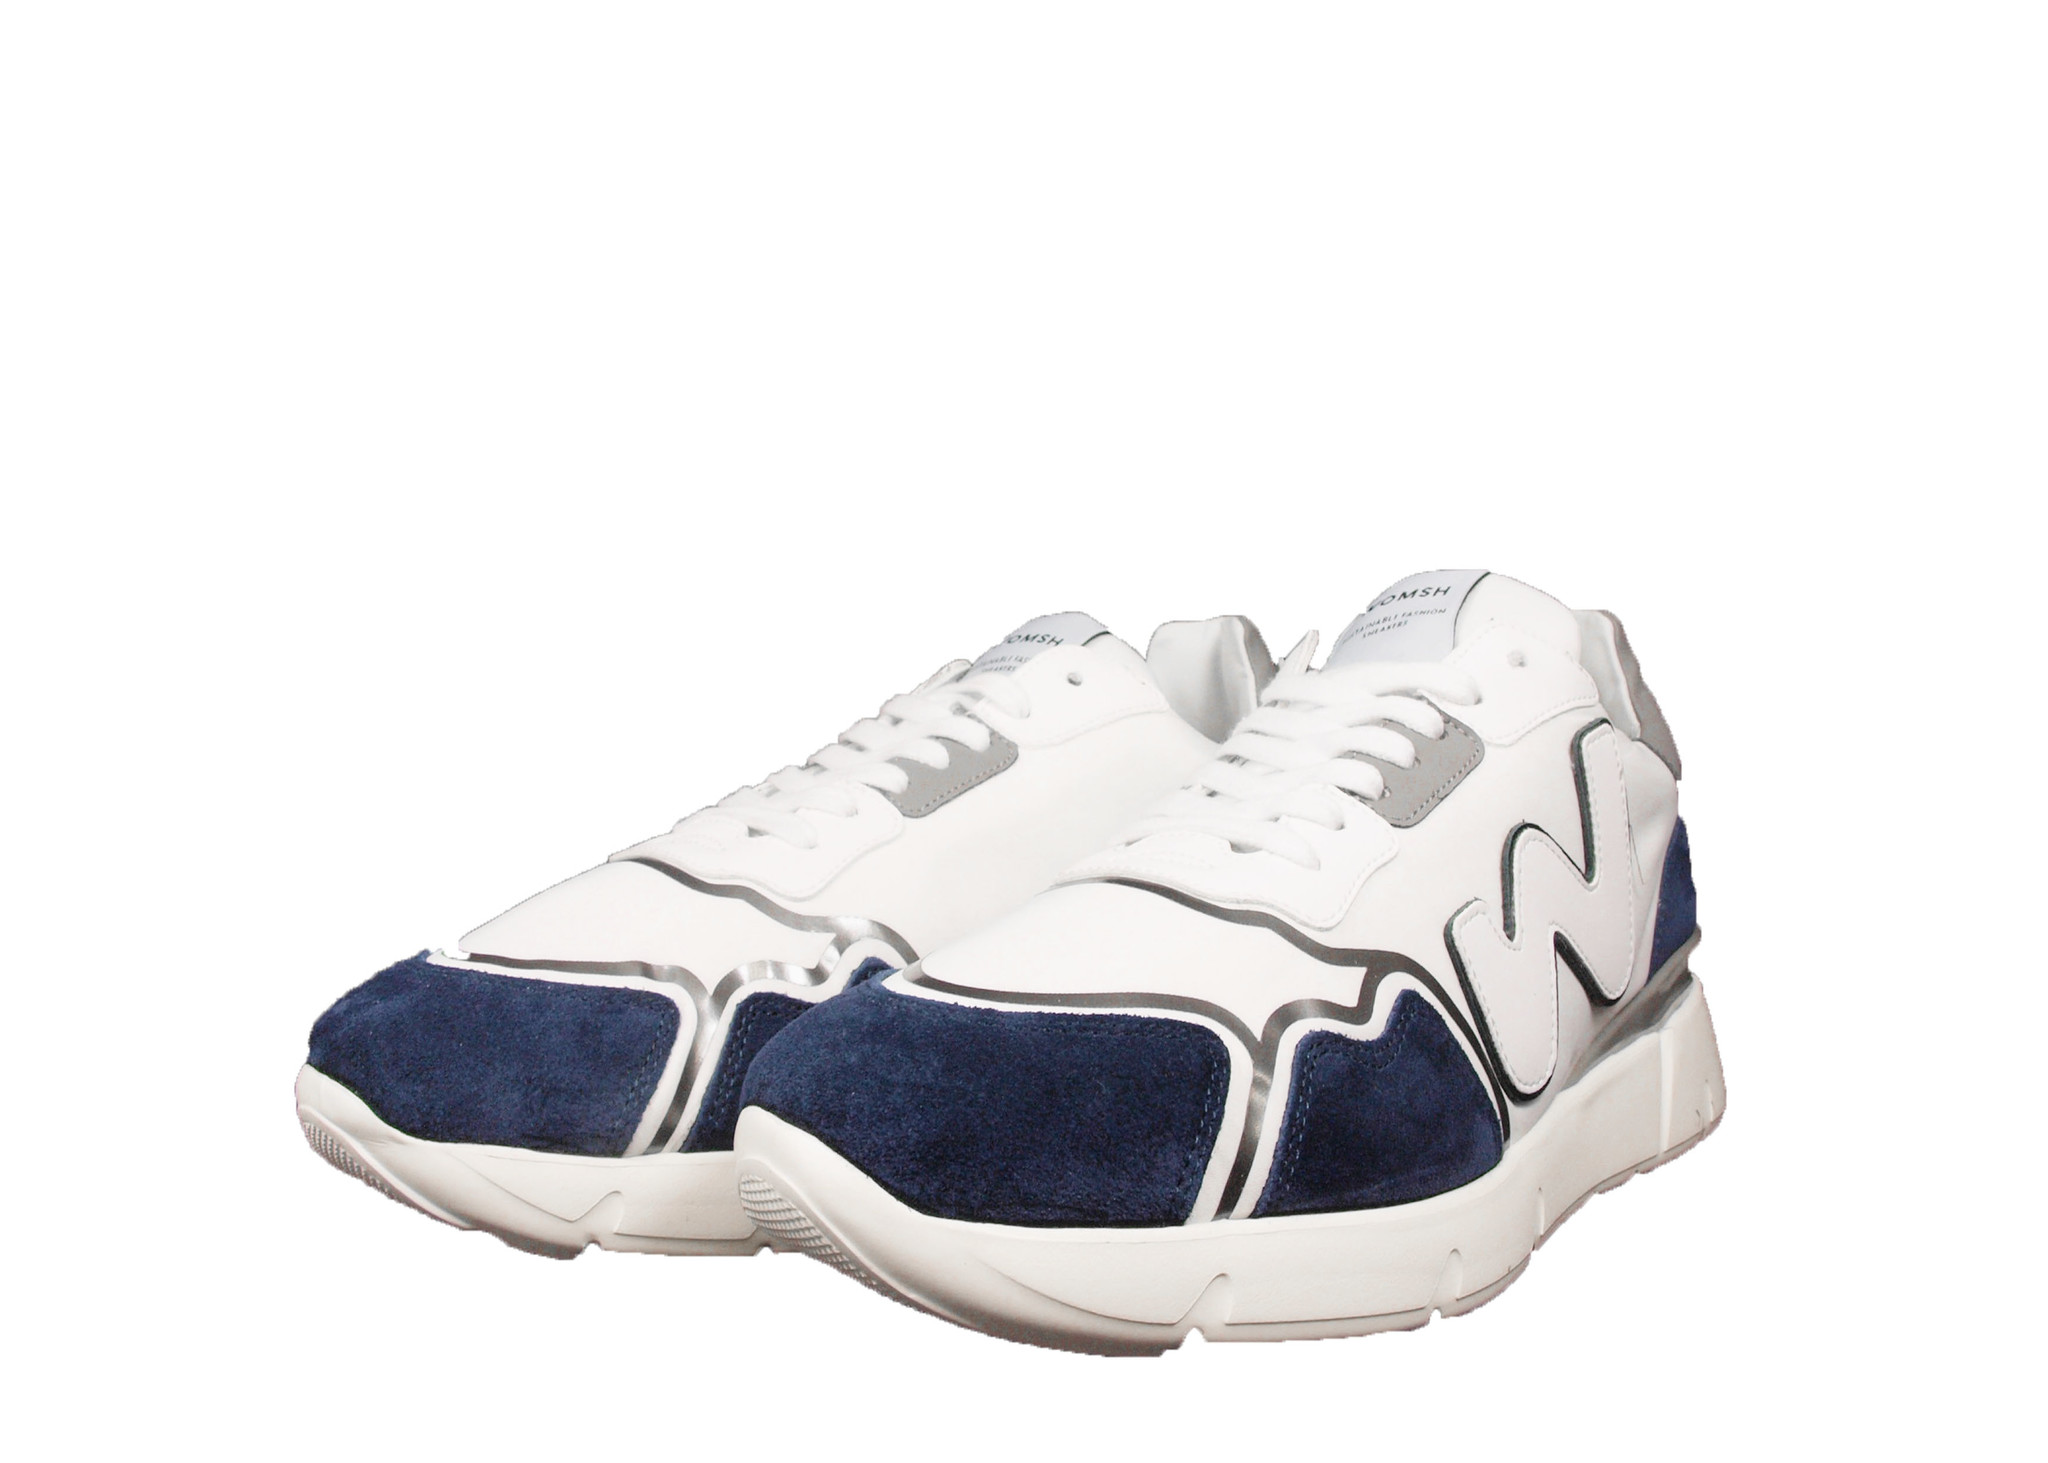 WOMSH WOMSH Sustainable Sneaker R211463 Runny Wit/Blauw